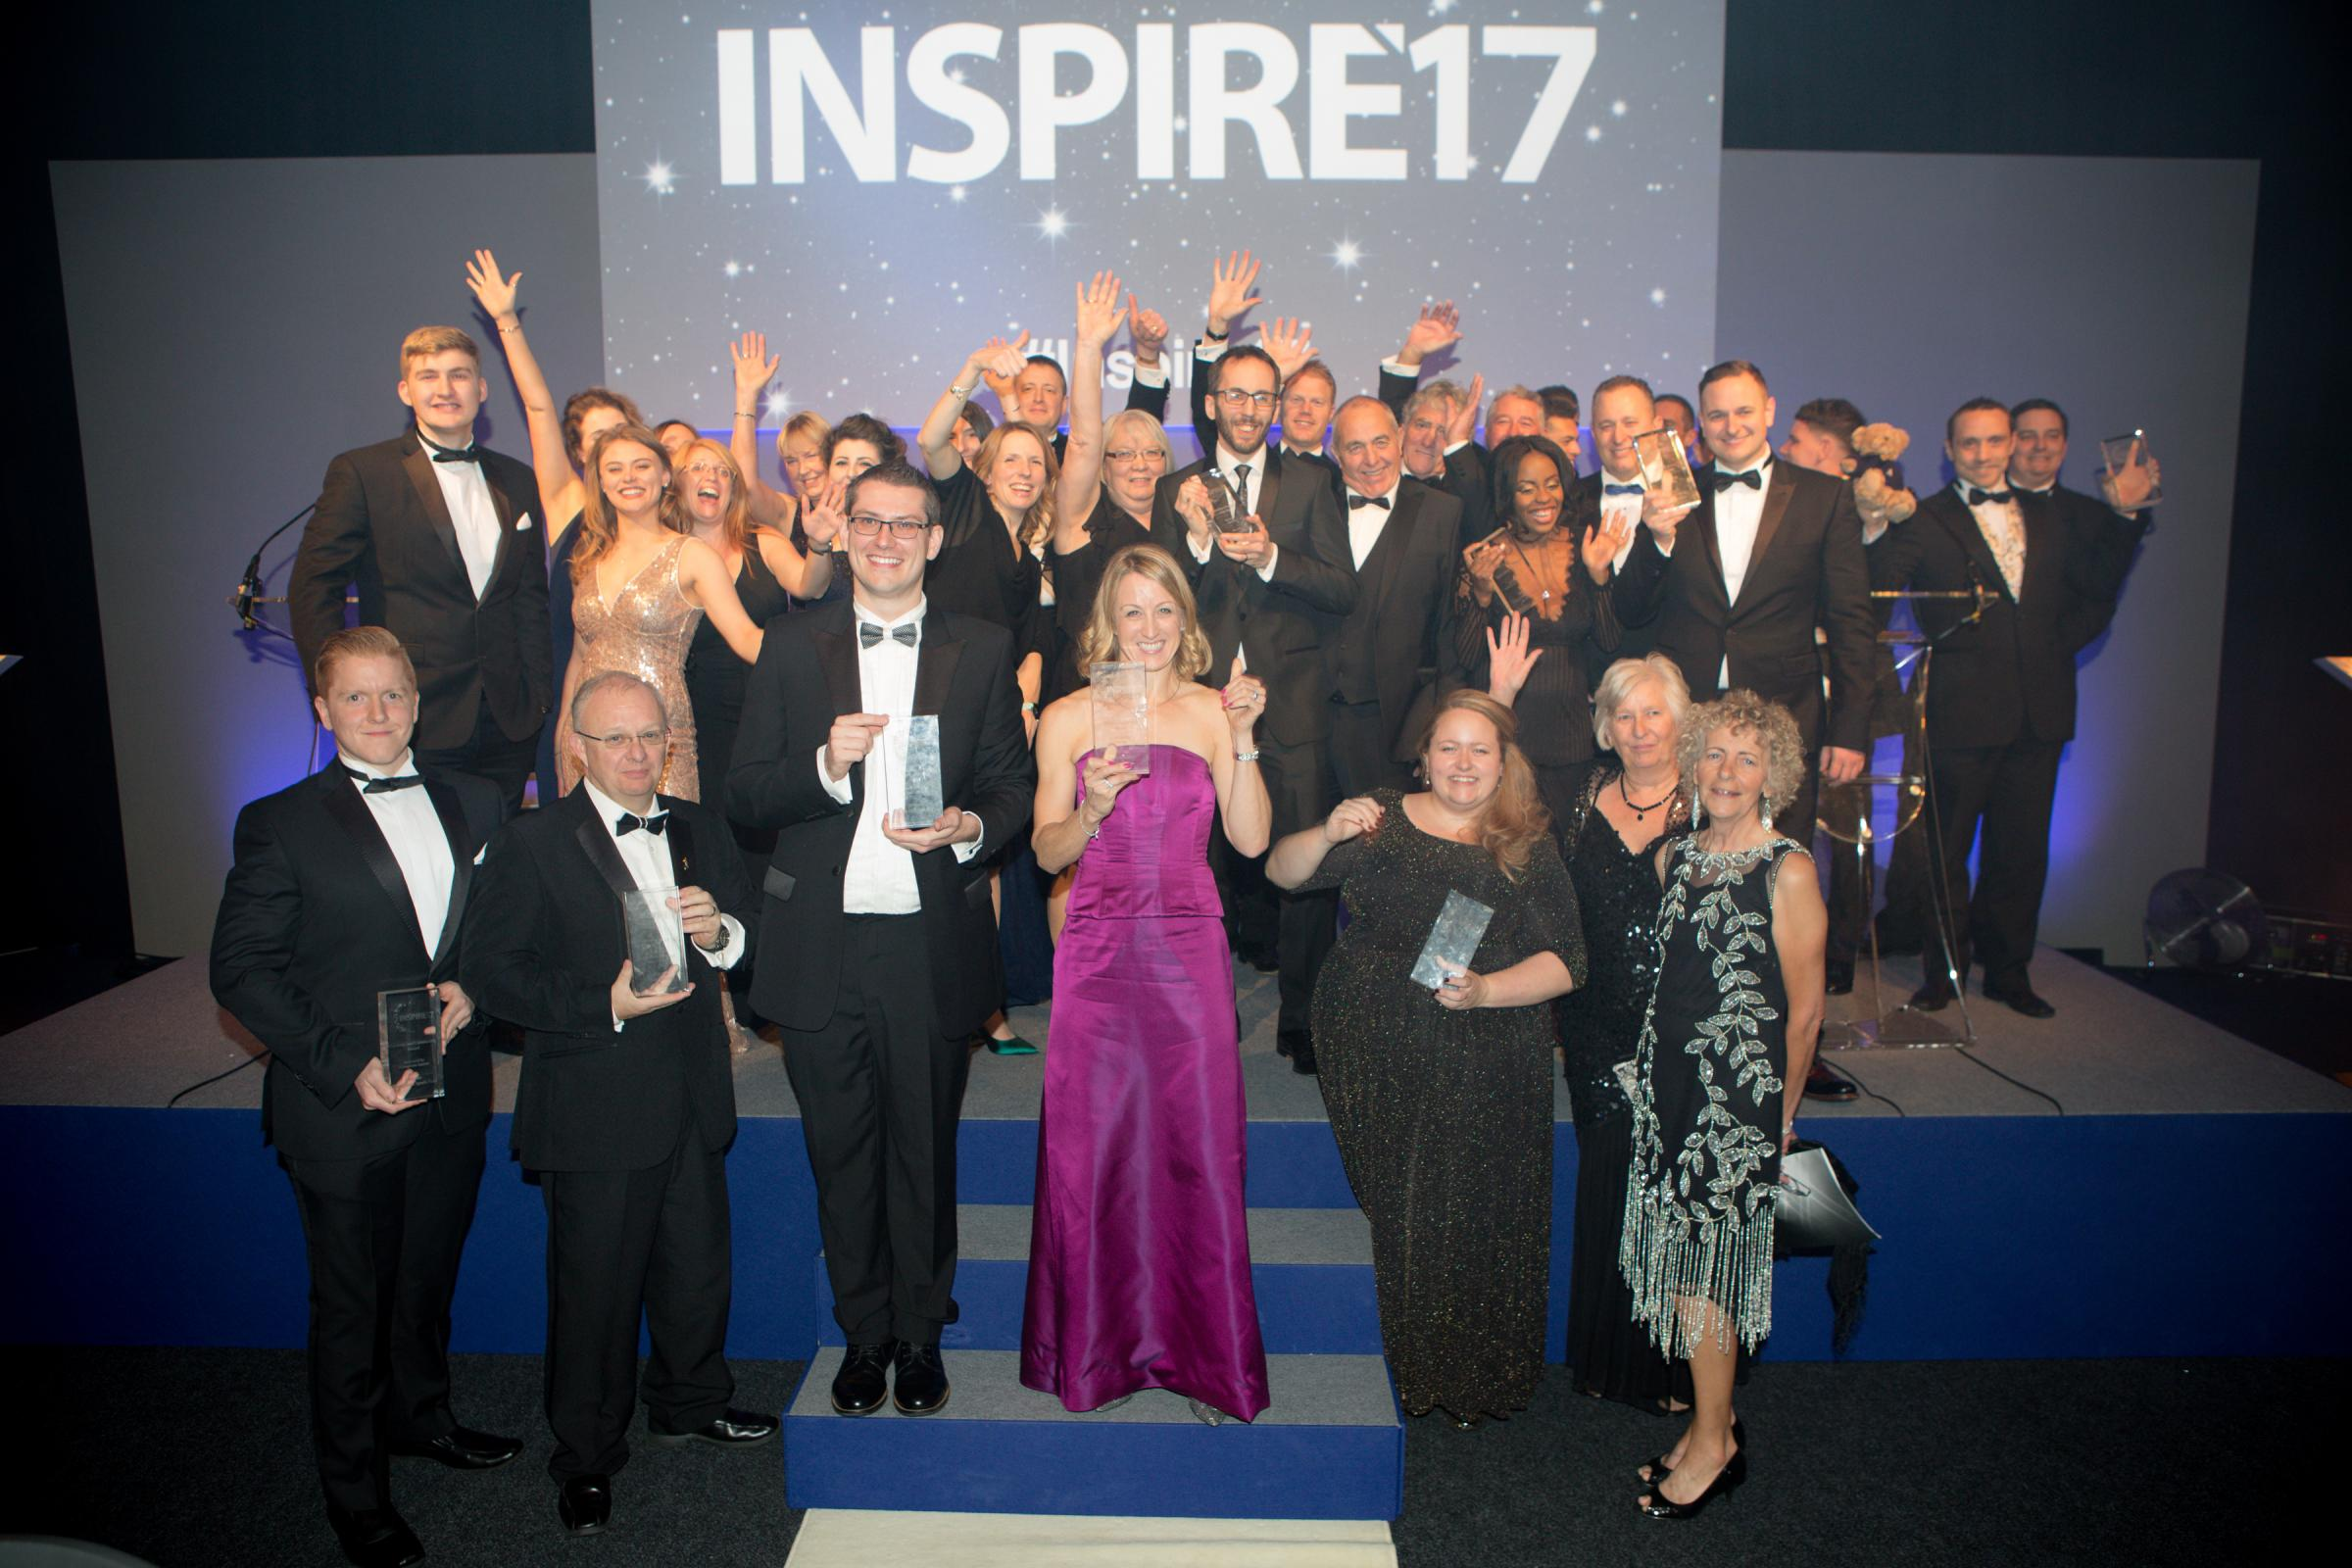 Winners at the 2017 INSPIRE awards